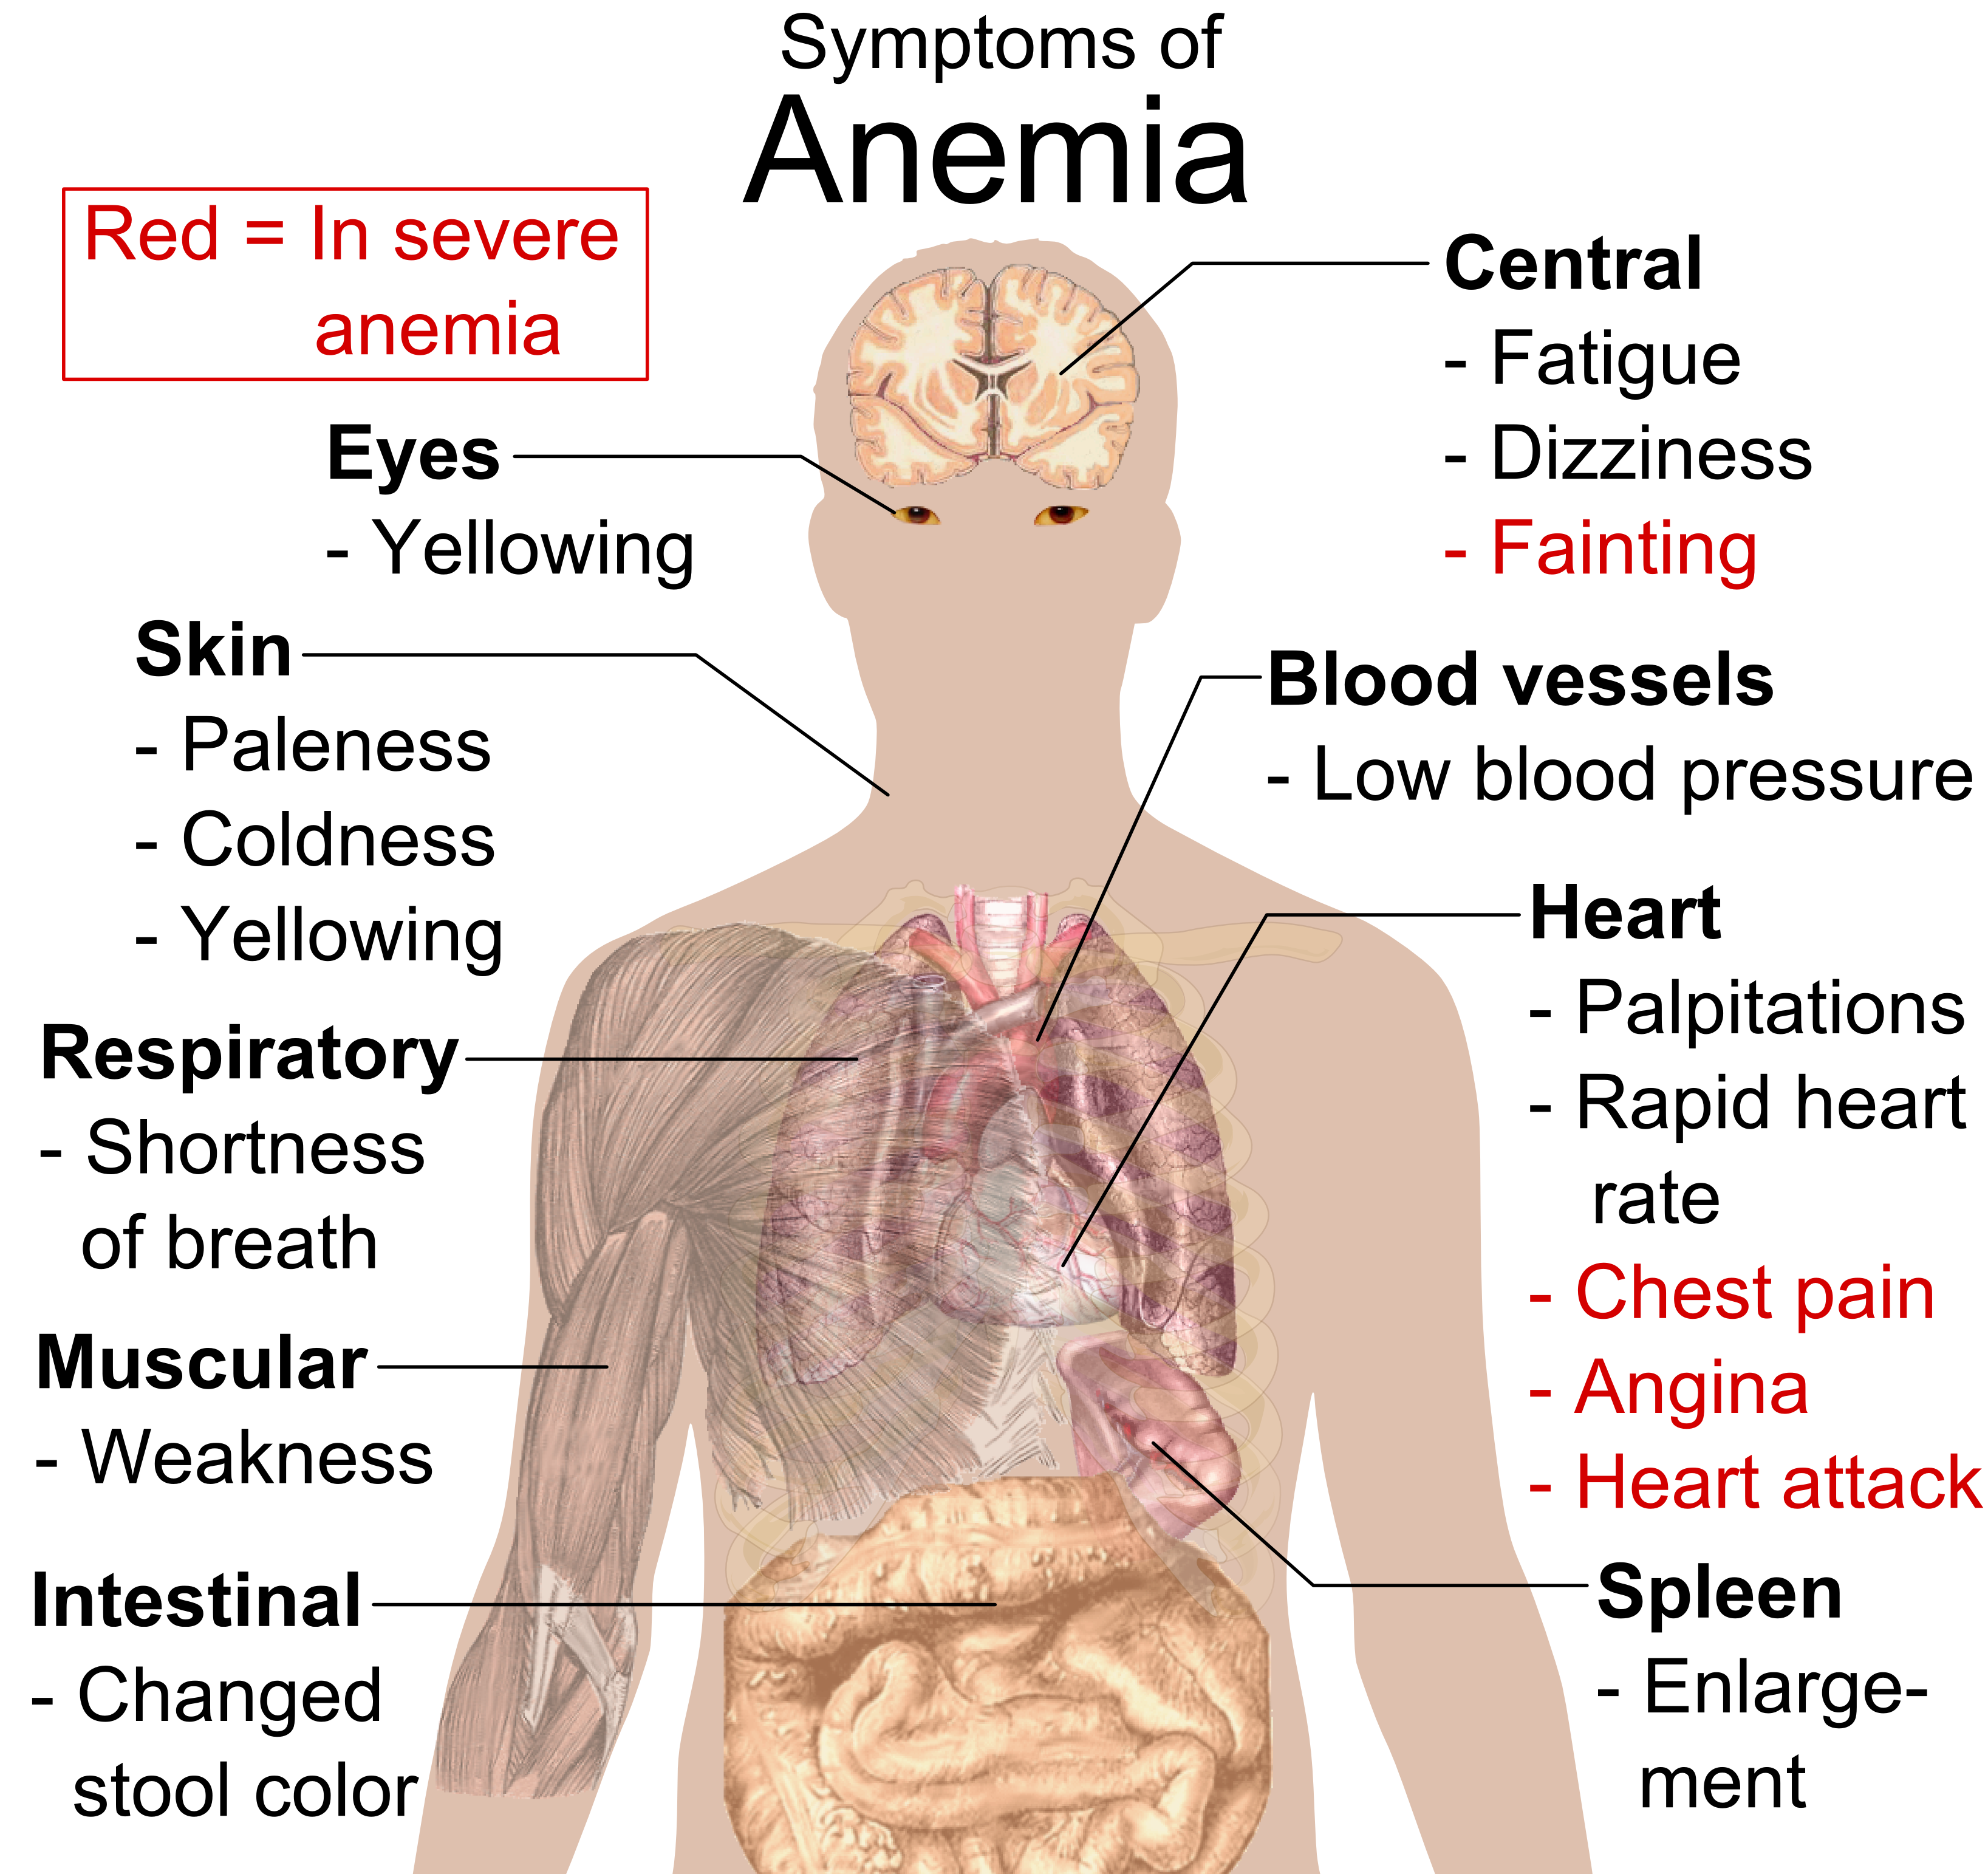 Signs of vitamin deficiency in the body